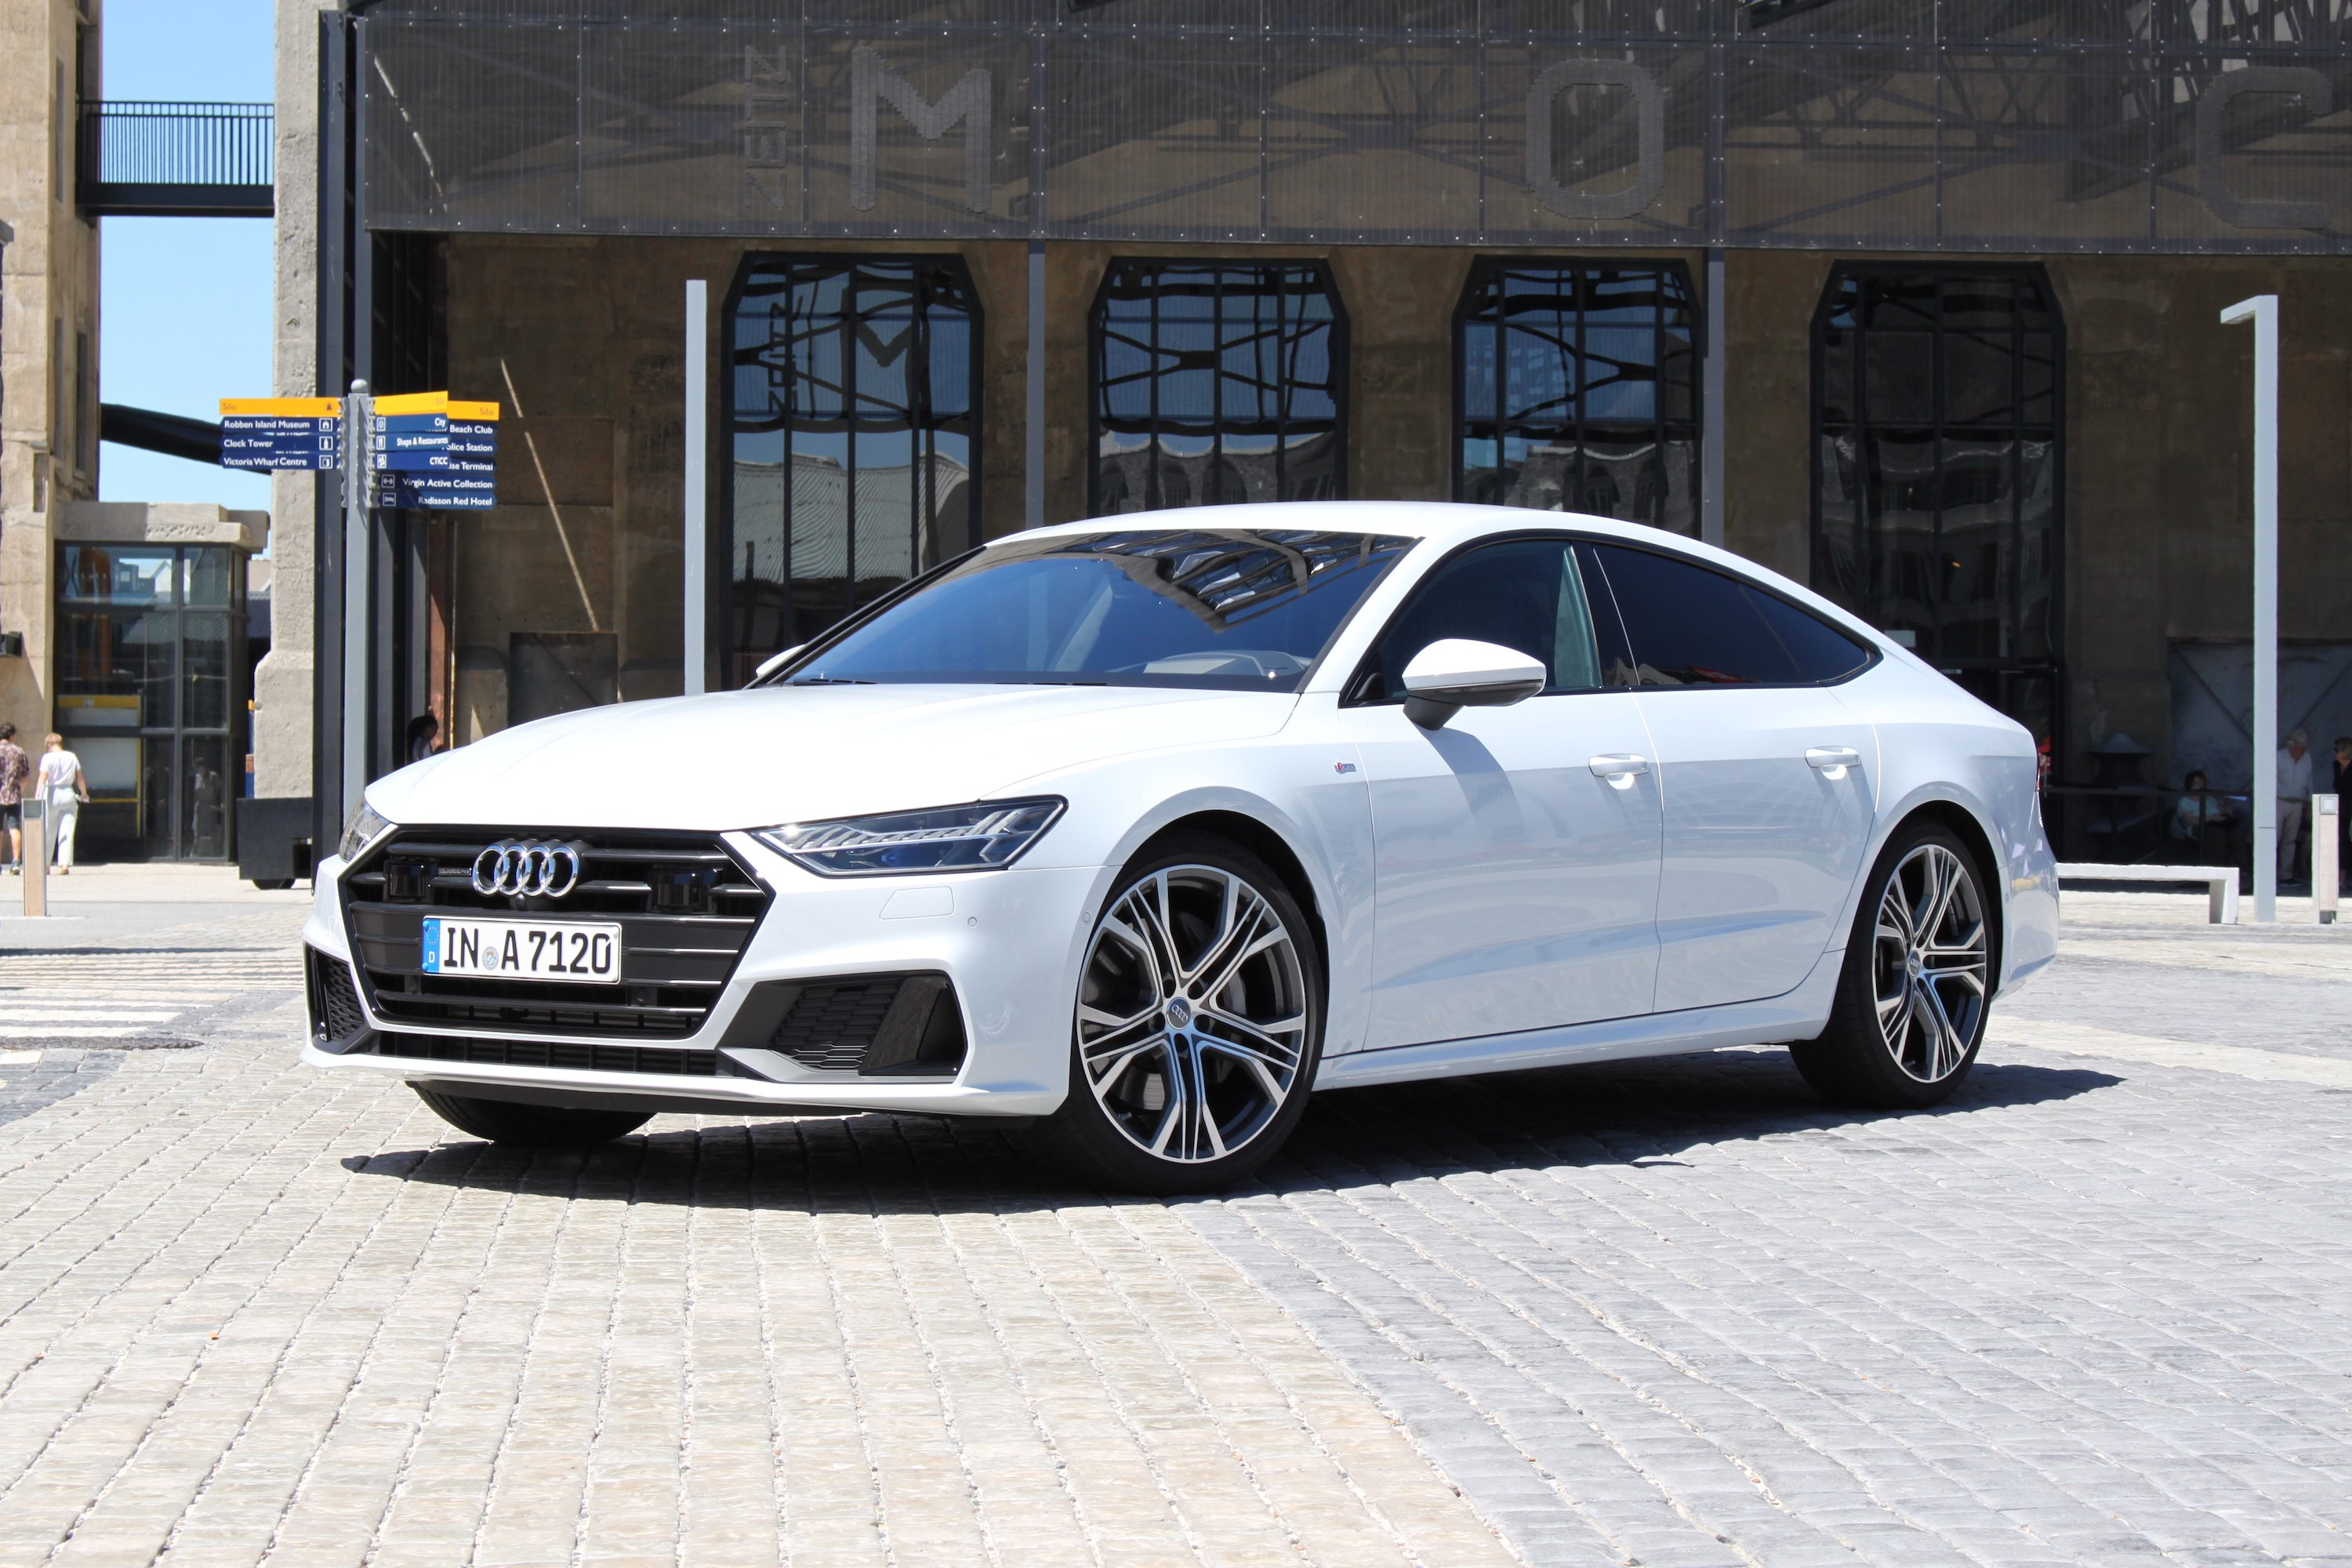 audi prevnext reviews large review first car price auto quattro drive top tip performance rs fsi gear the